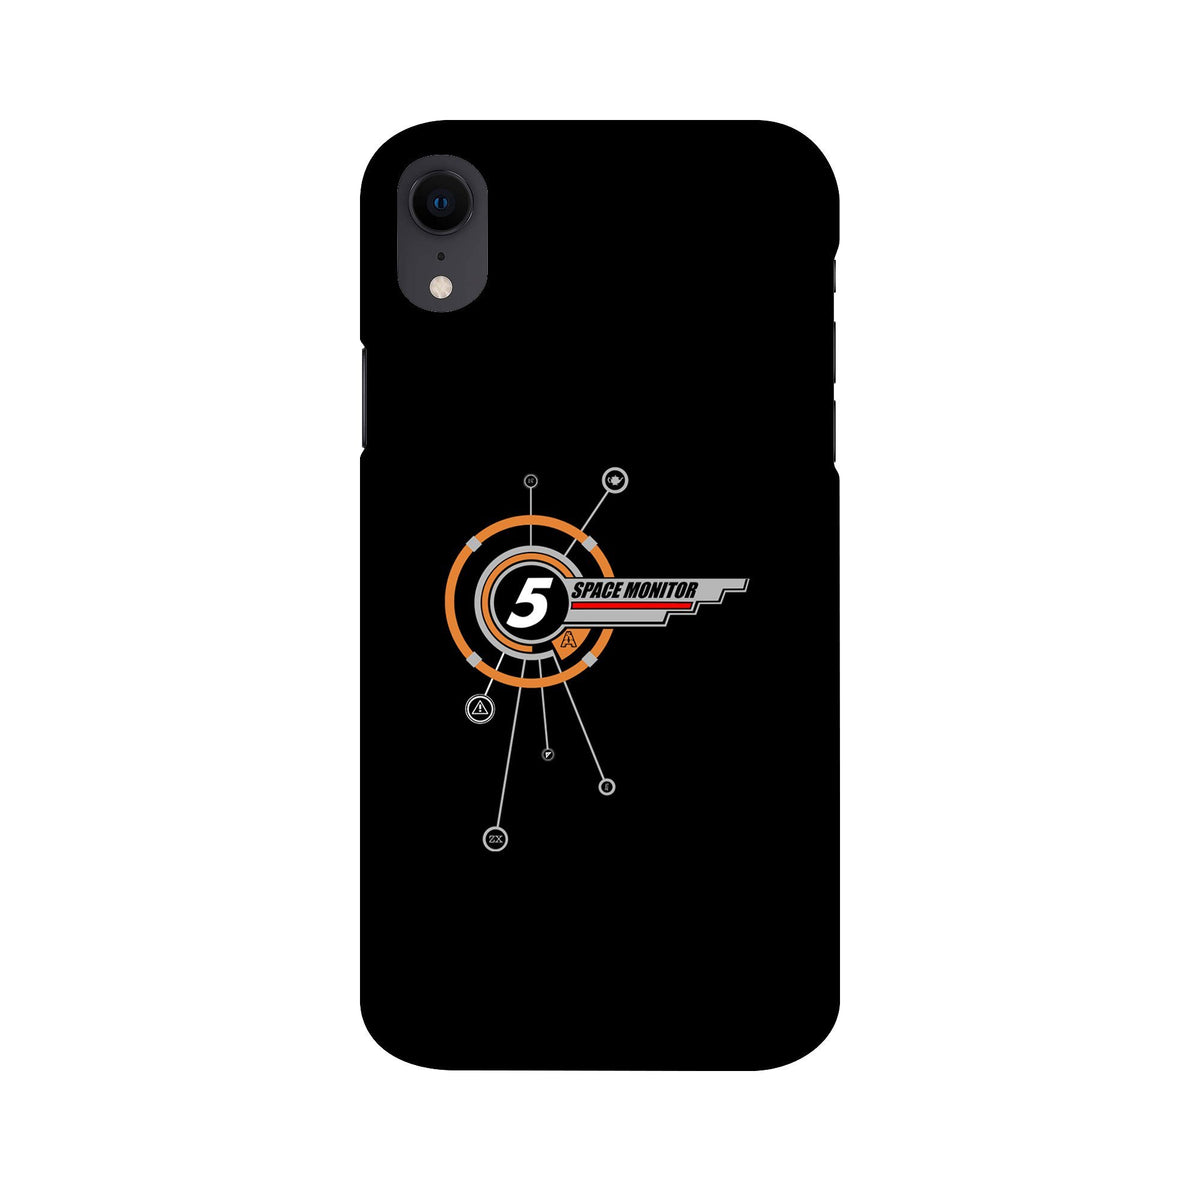 Thunderbird 5 Inspired Phone Case - The Gerry Anderson Store